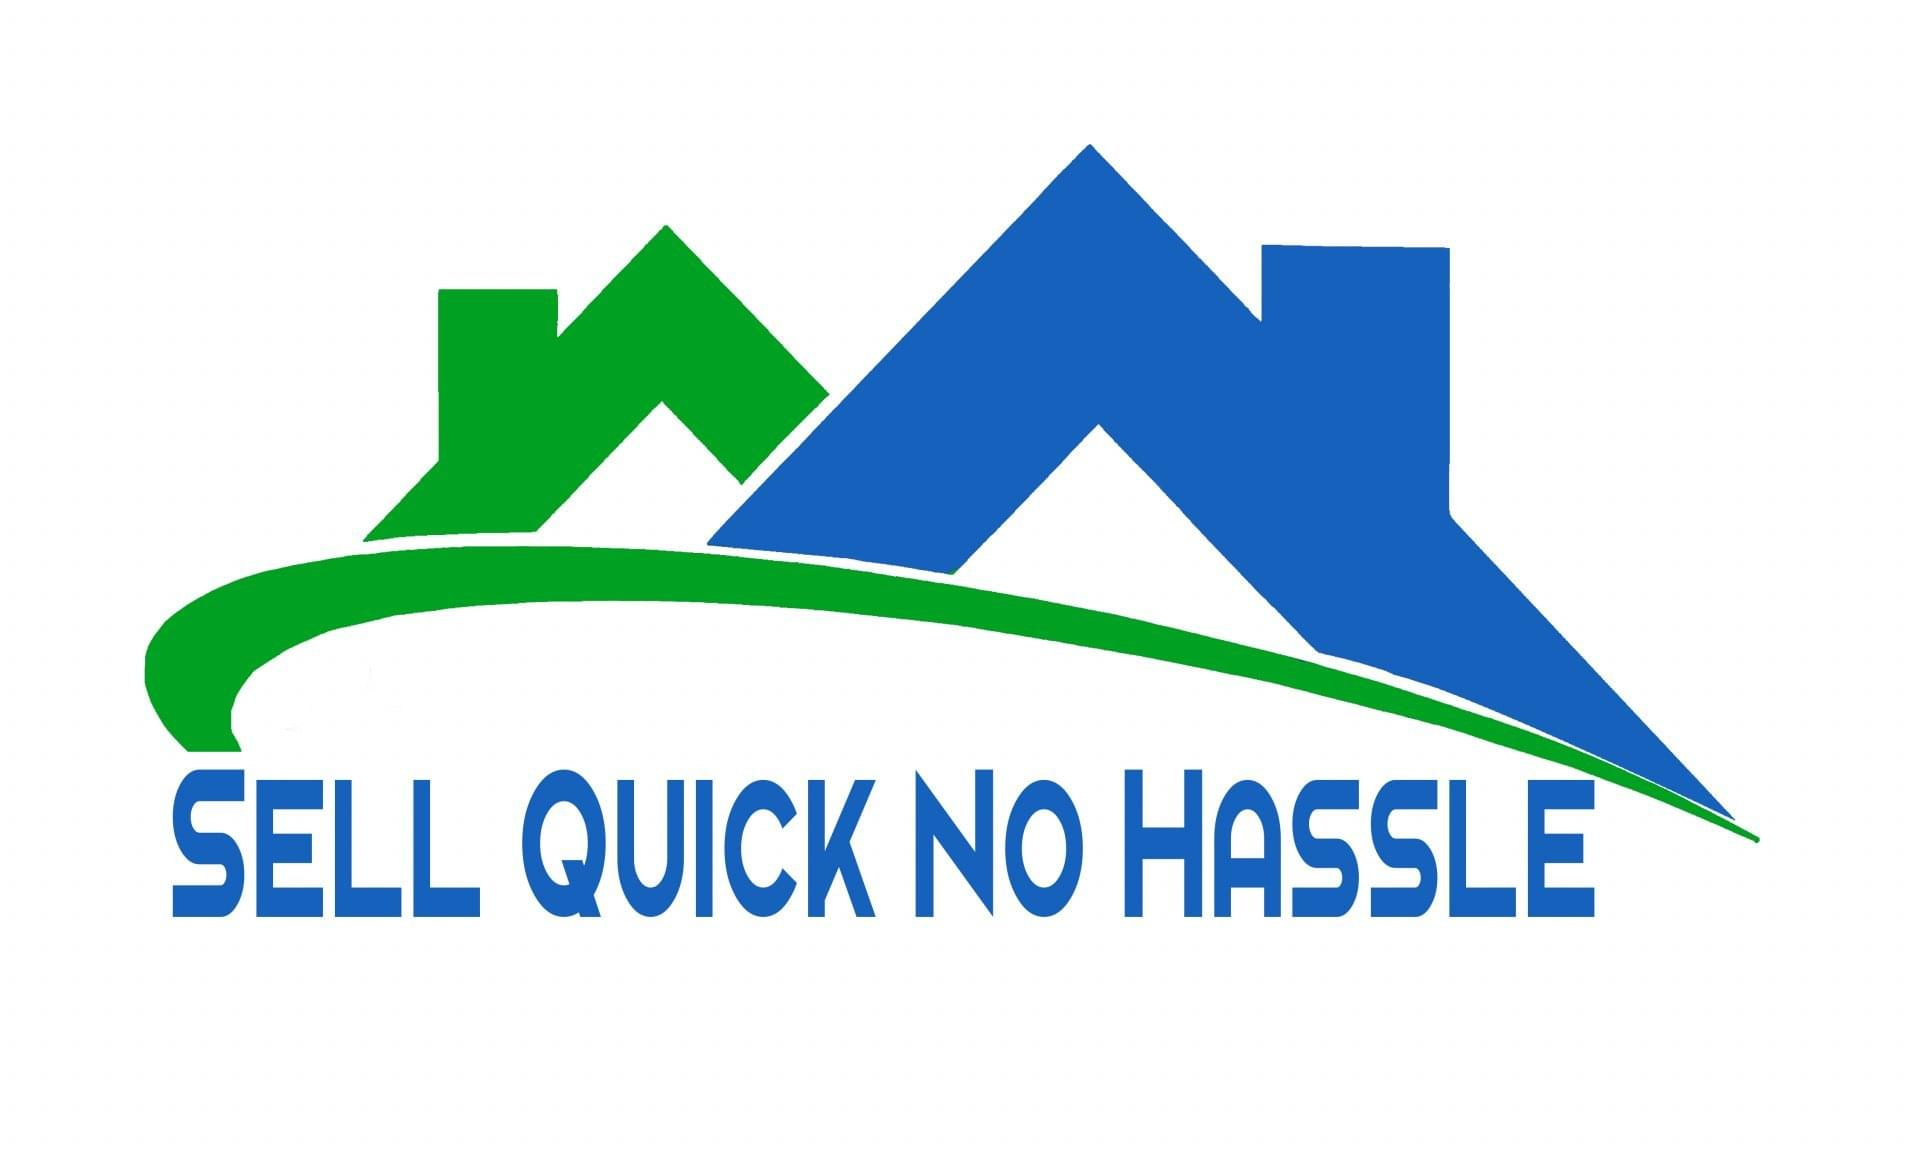 Sell Quick No Hassle logo